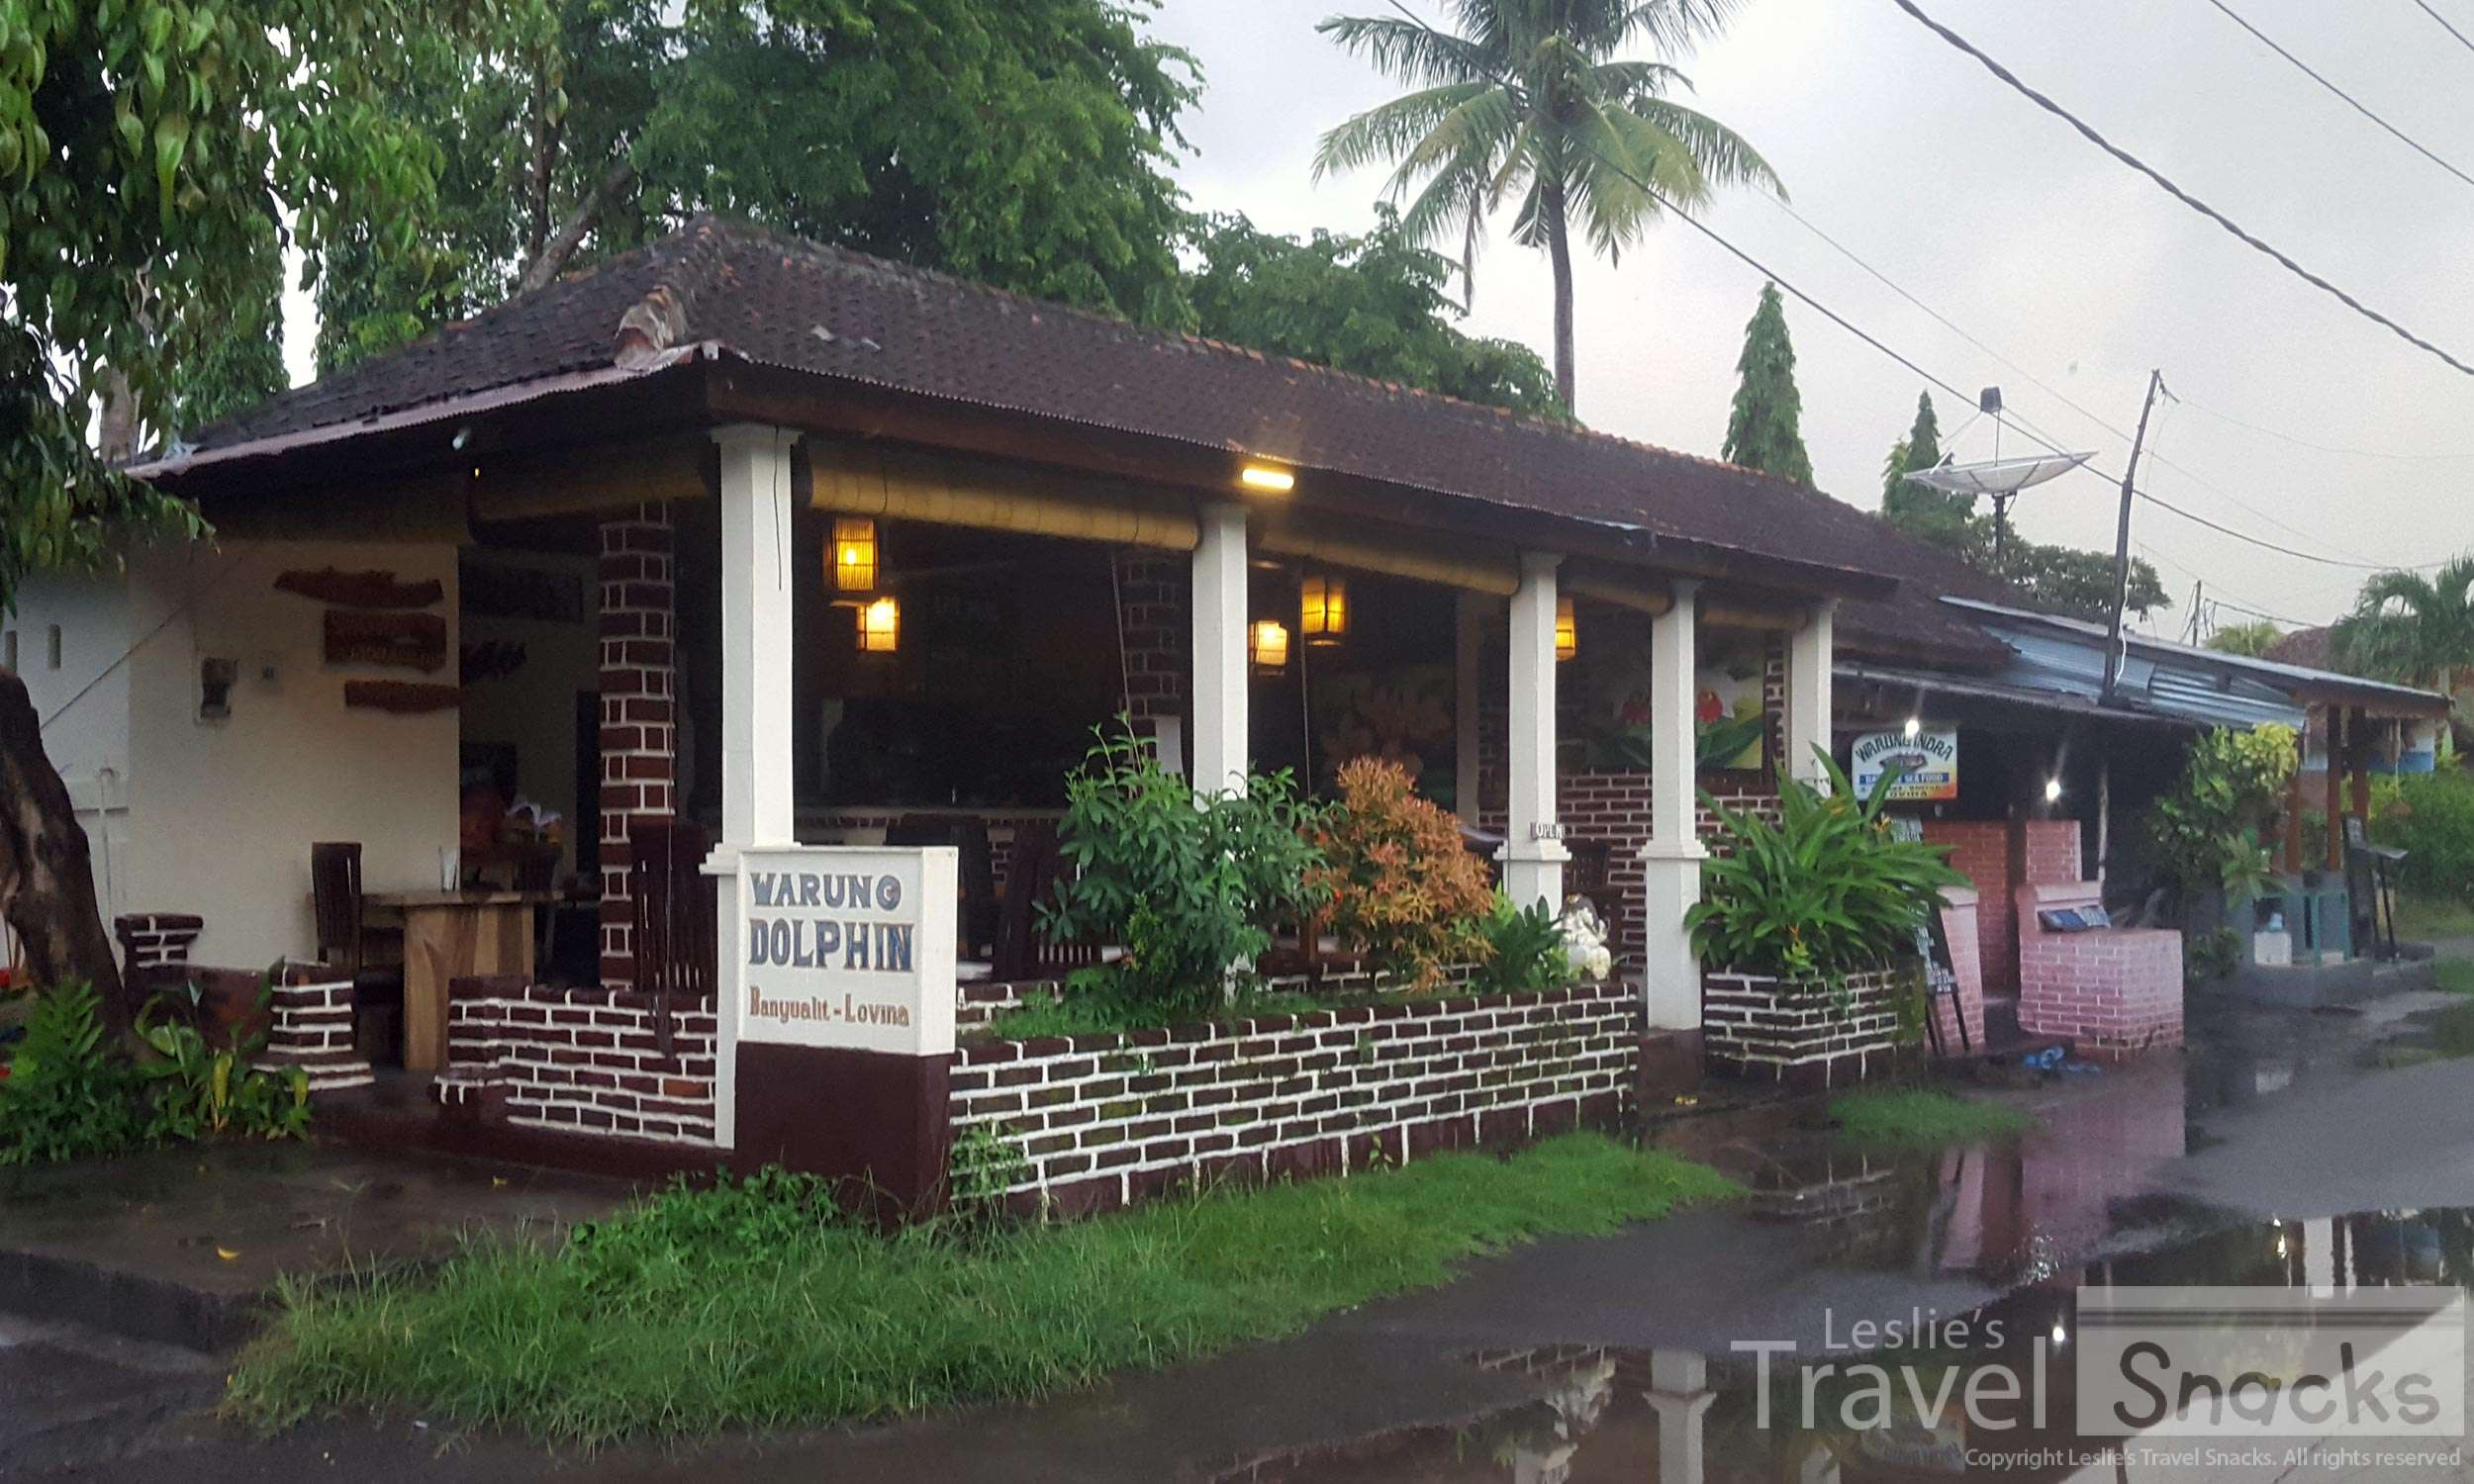 Warung Dolphin has a really nice atmosphere. It's smaller and by the water.